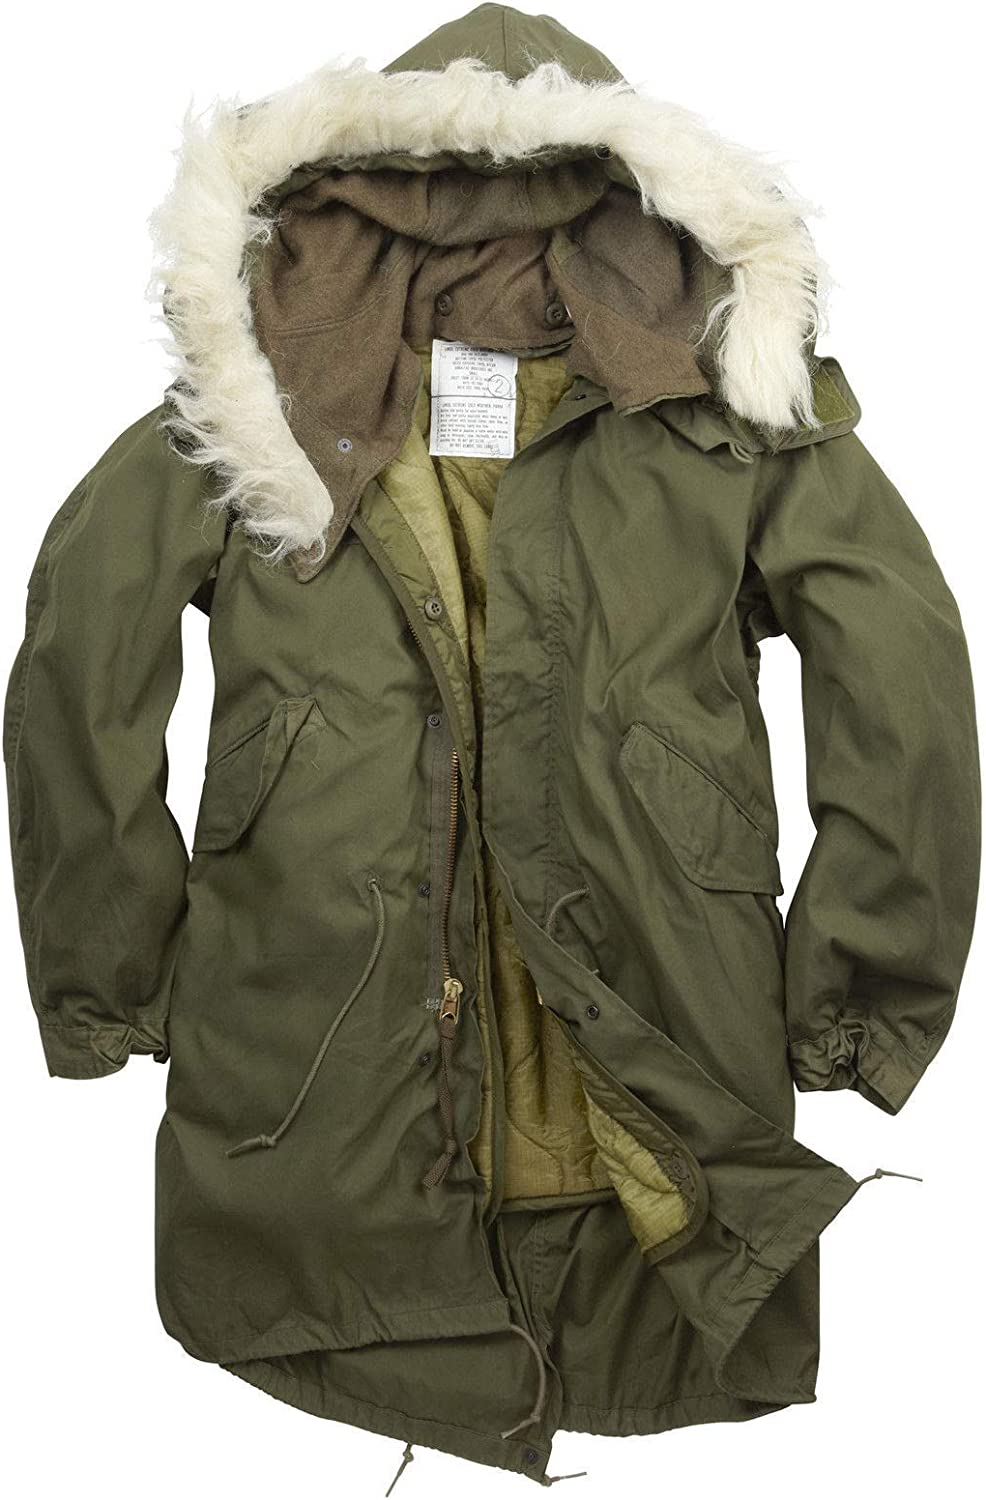 The Great Fishtail Parka